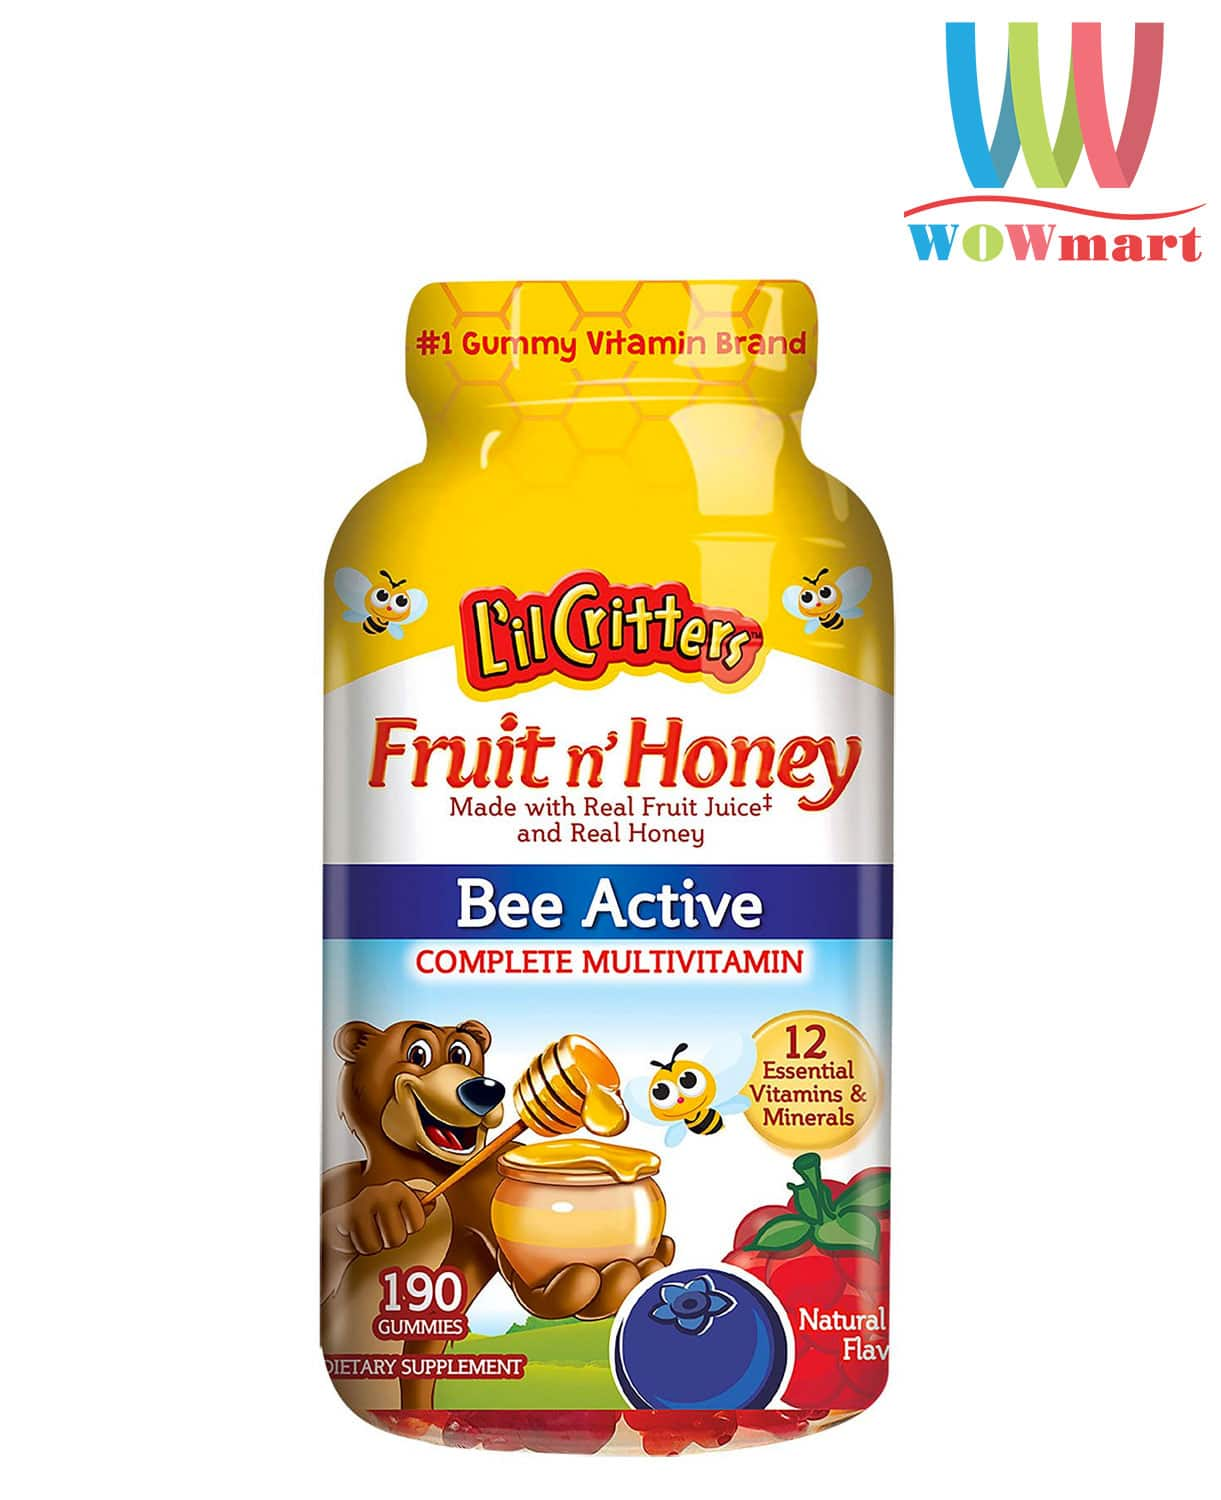 keo-bo-lil-critters-fruit-n-honey-bee-active-multivitamin-190-vien